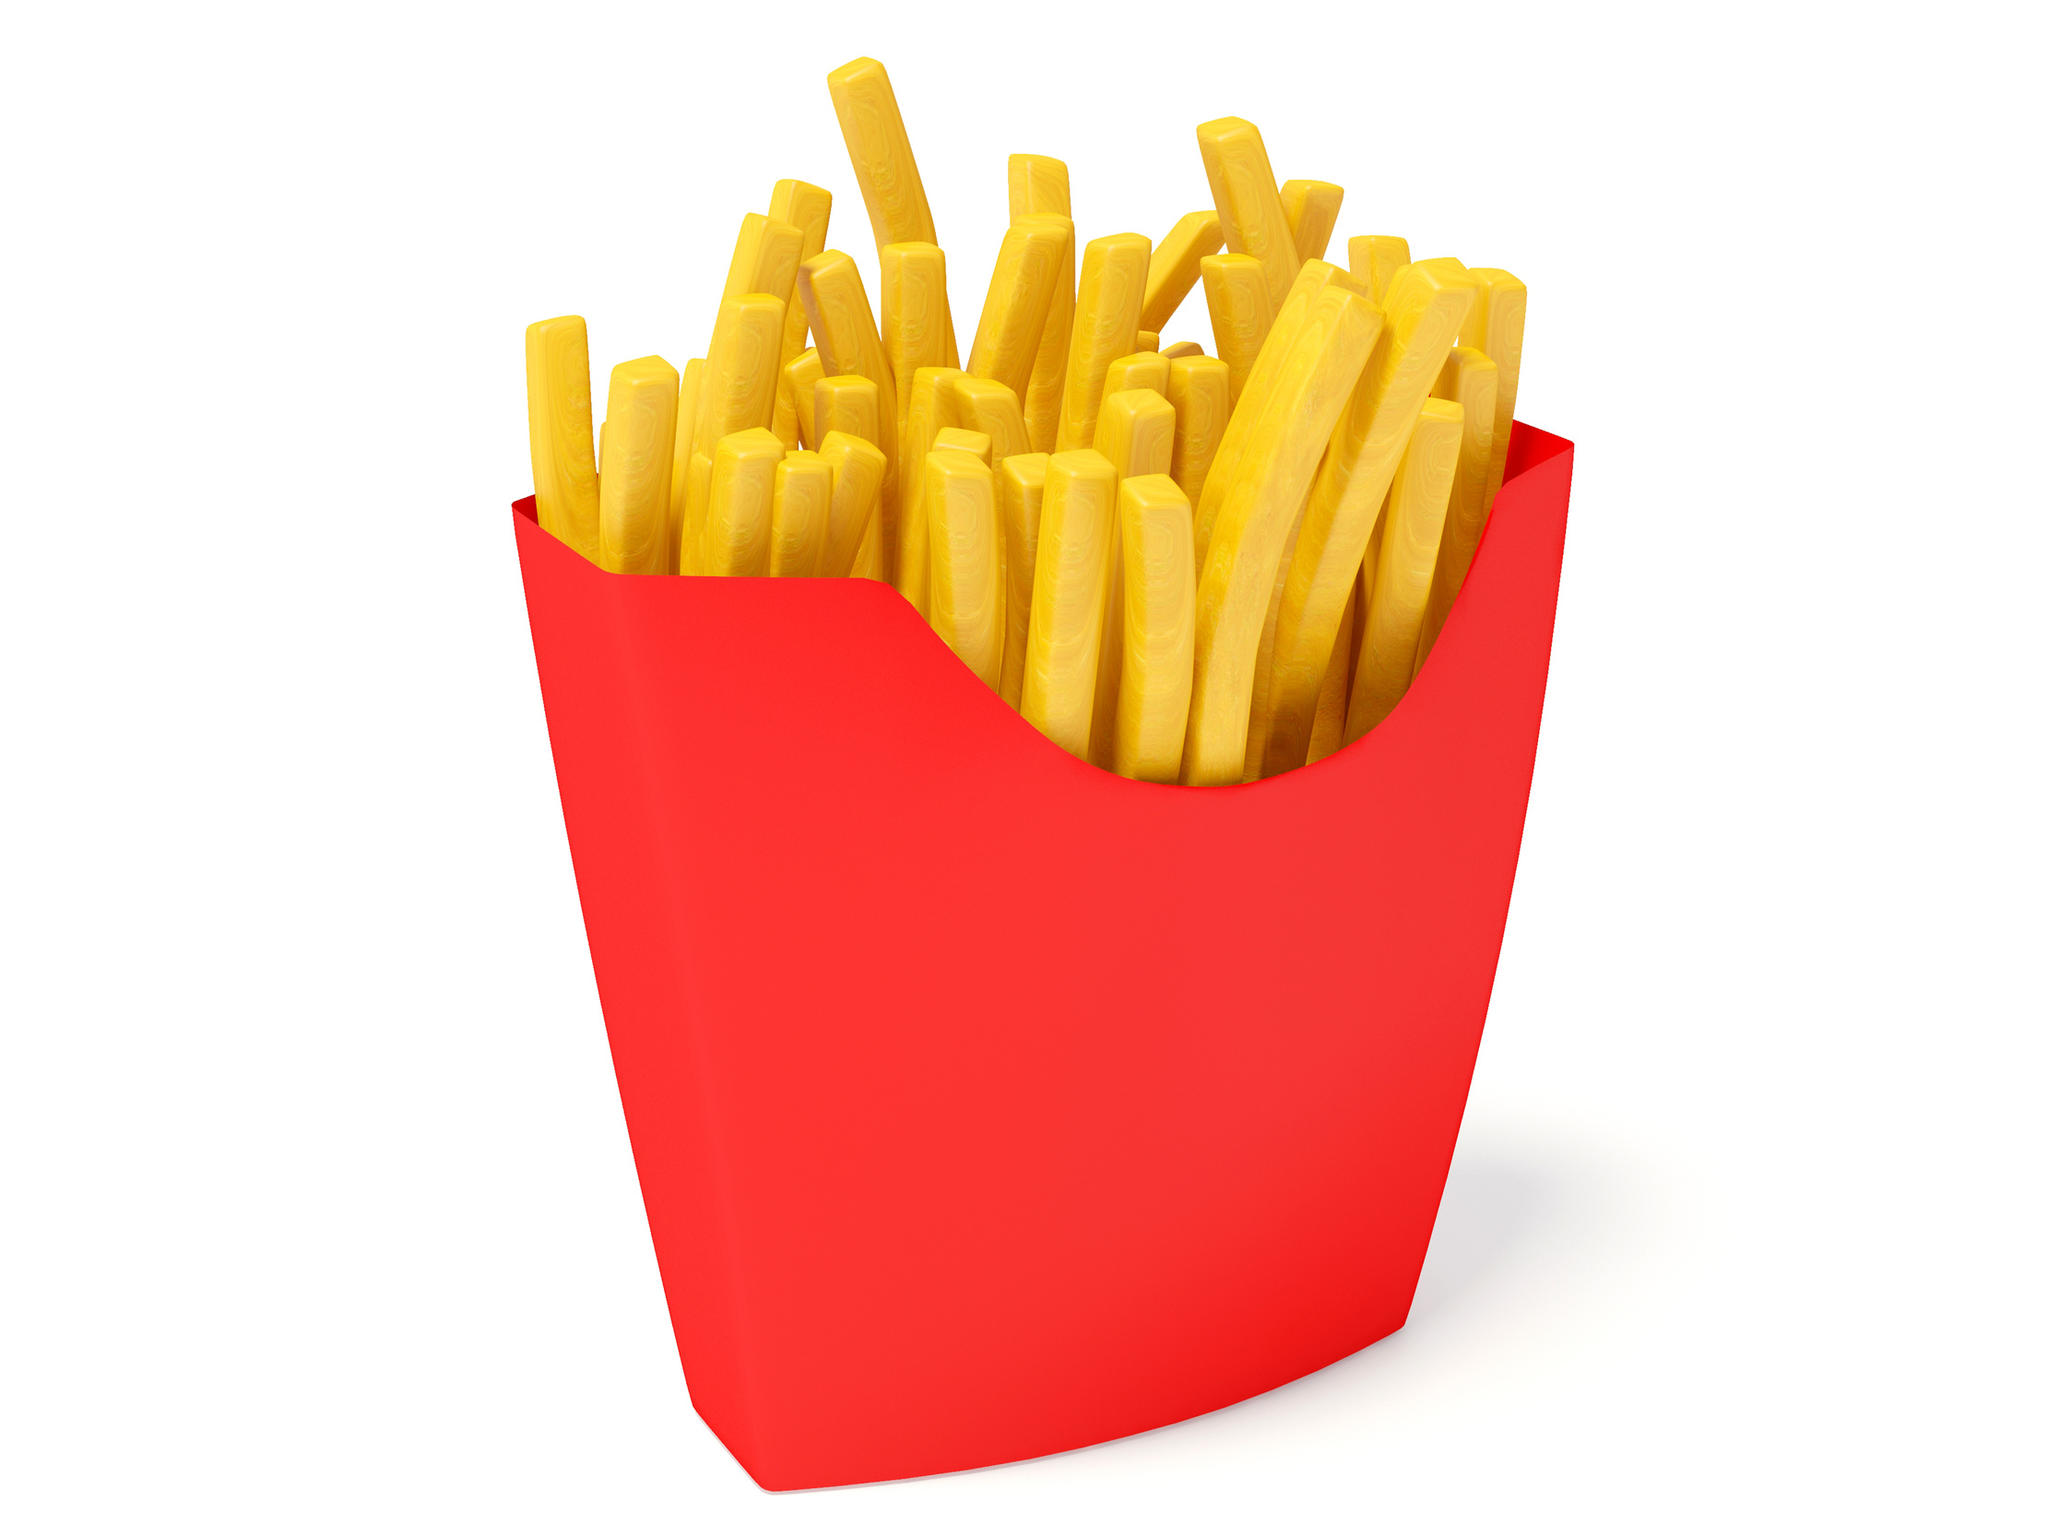 Fries Clipart - Clipart Suggest